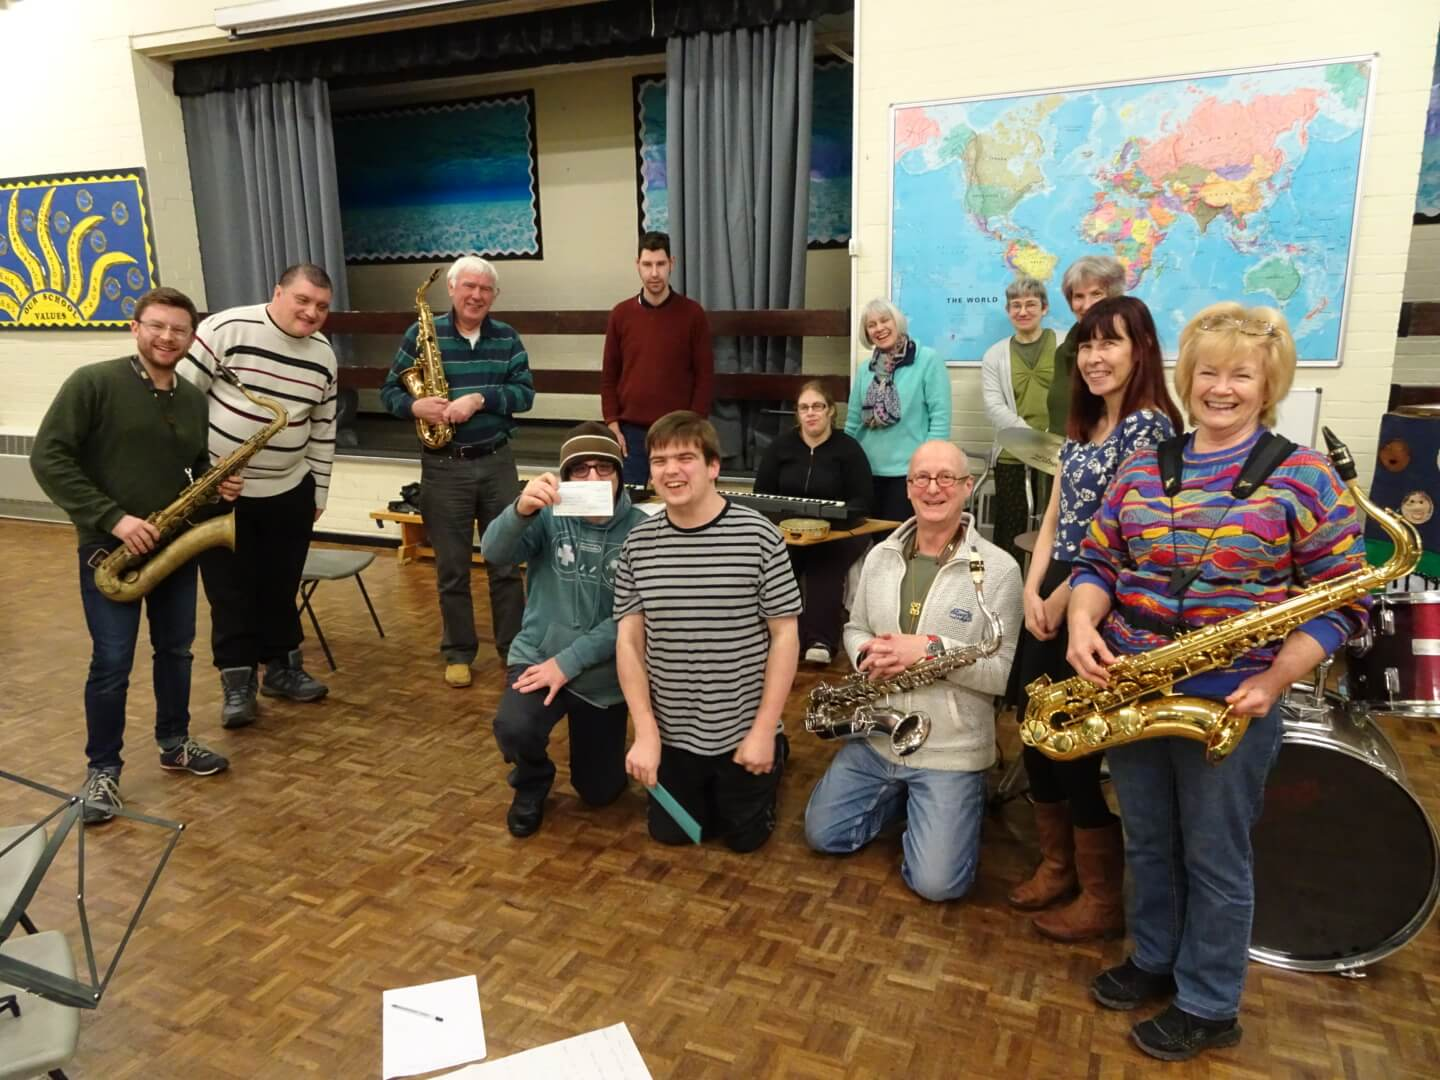 Kent Music Band without Boundaries